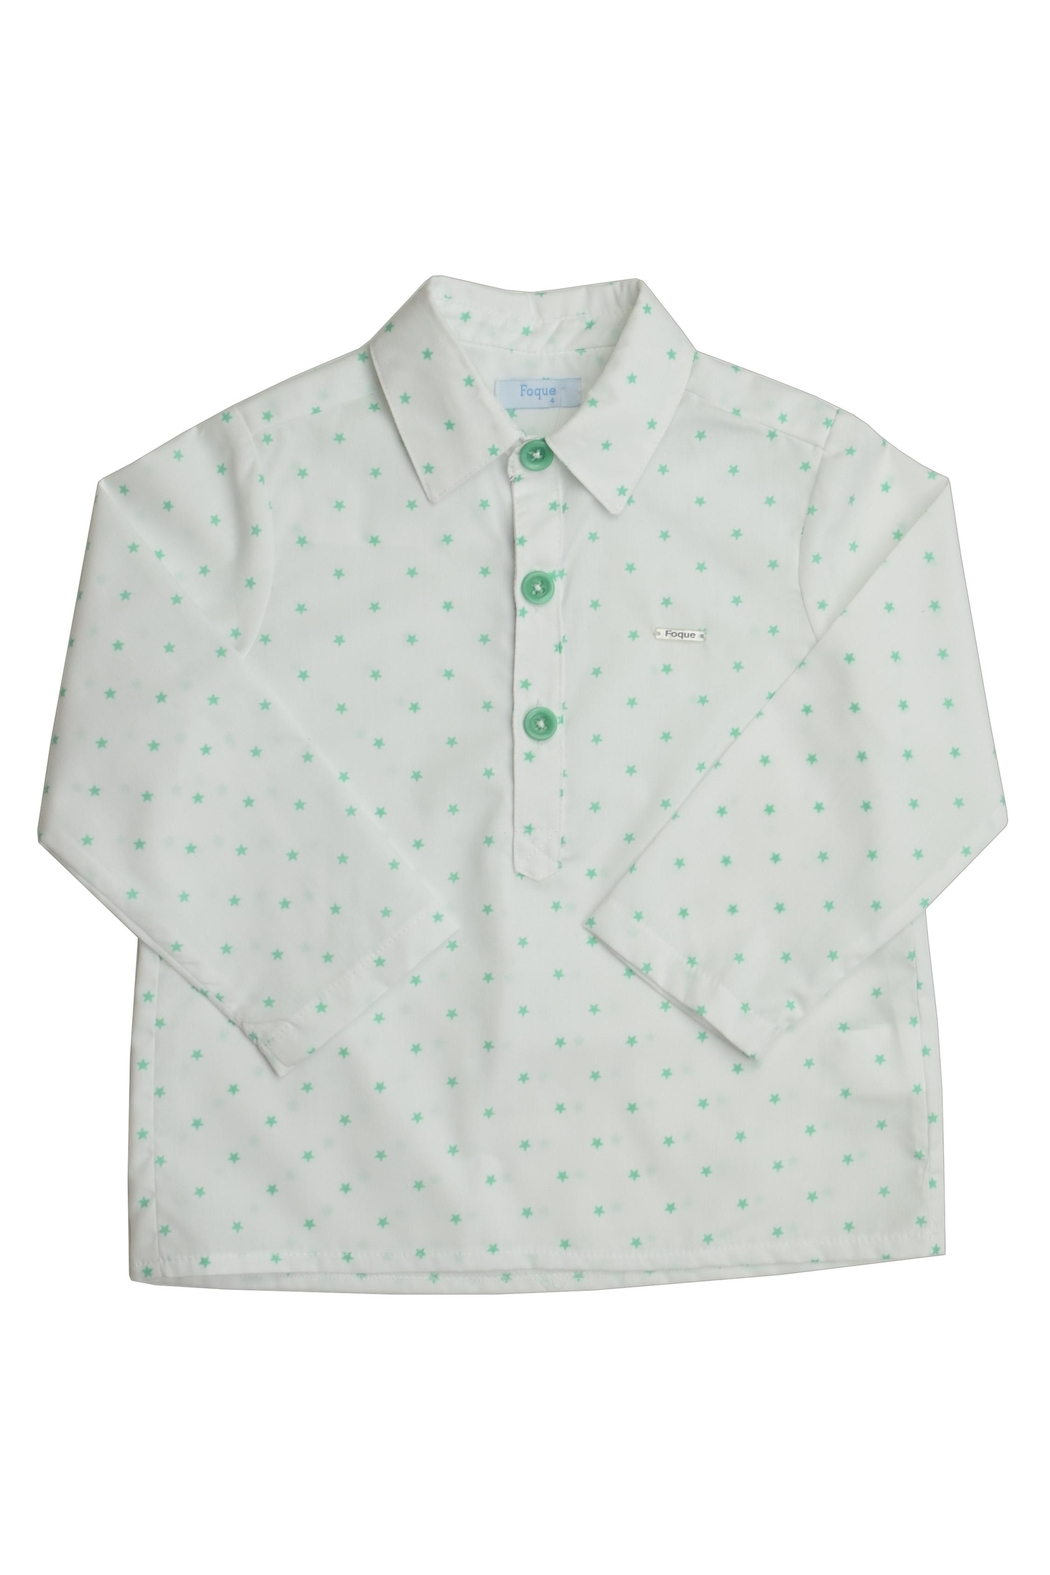 Foque Green Star Shirt - Front Cropped Image